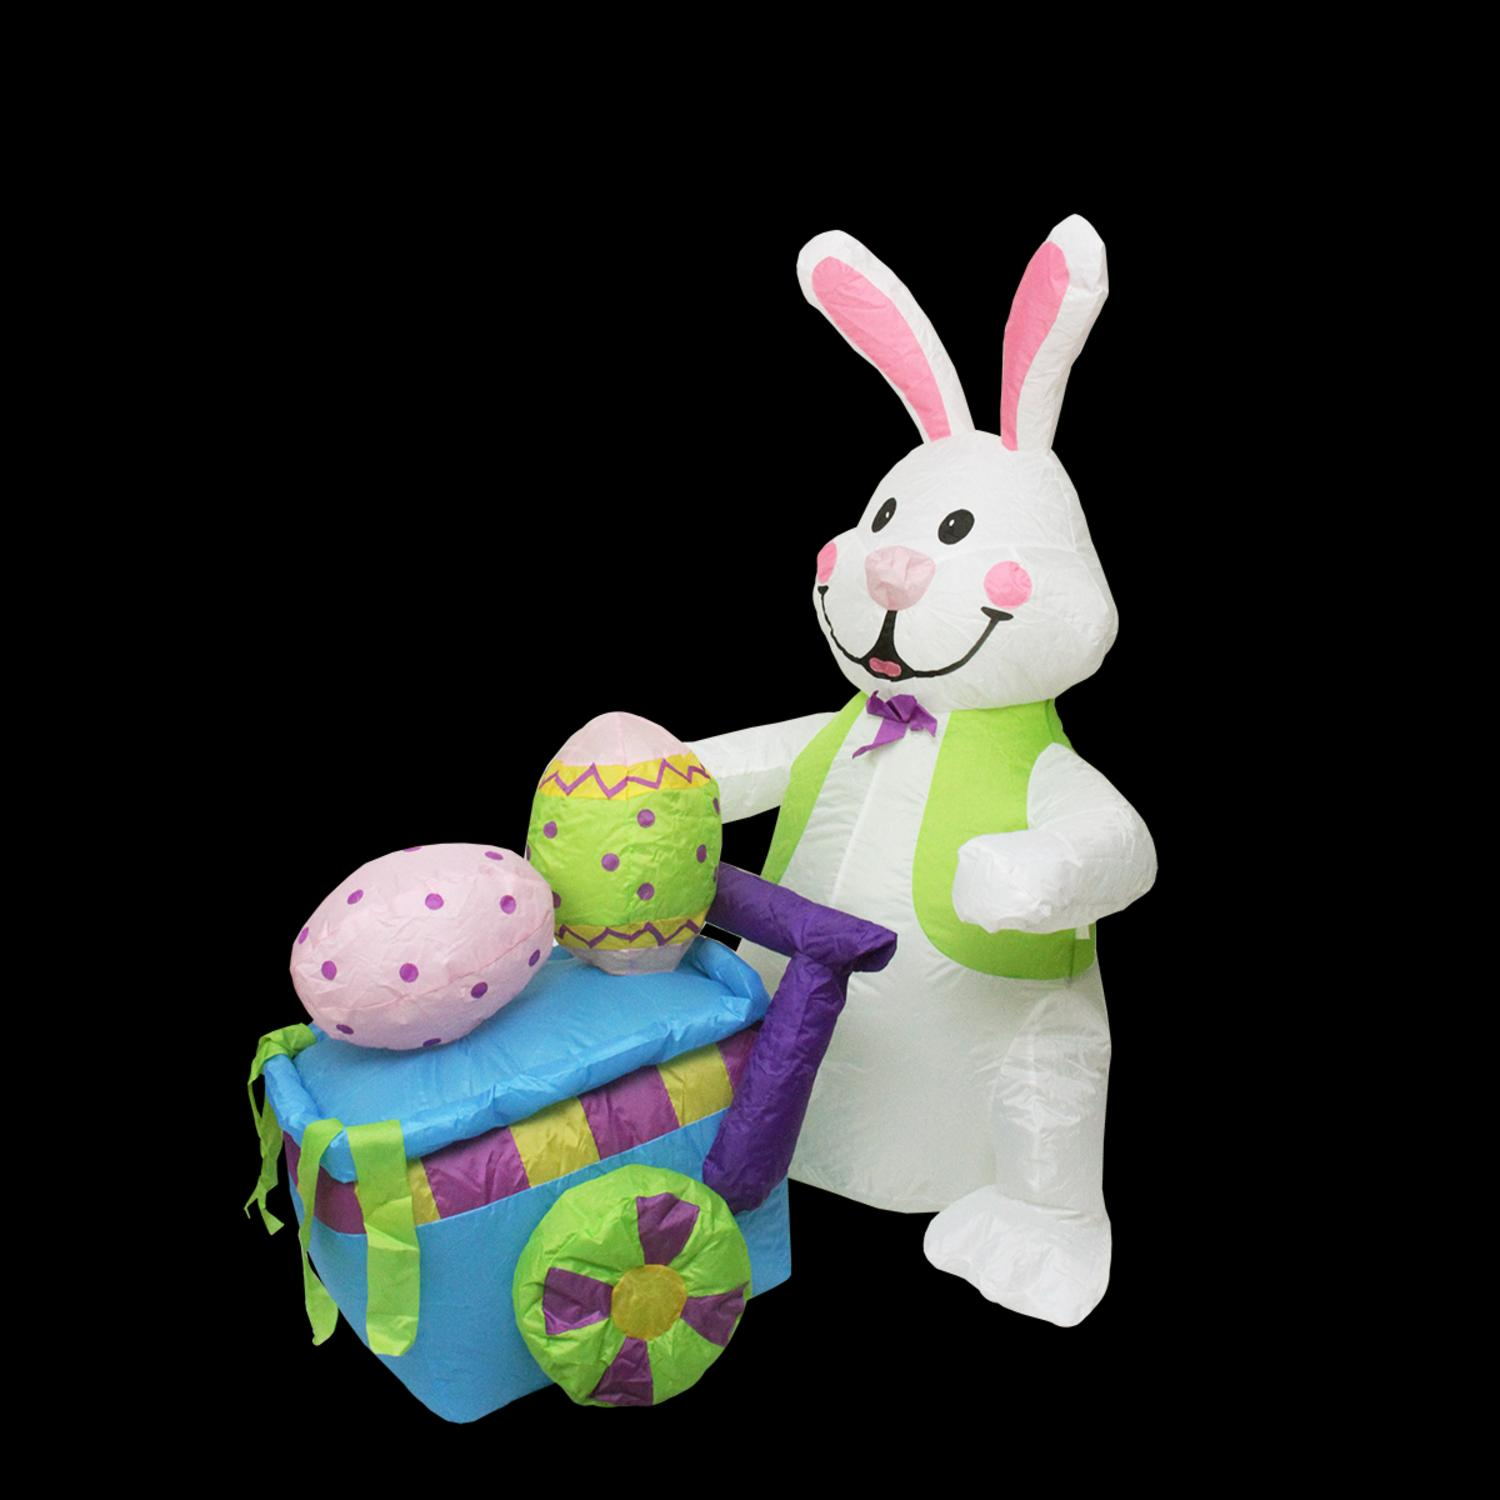 4' Inflatable Lighted Easter Bunny with Push Cart Outdoor Decoration